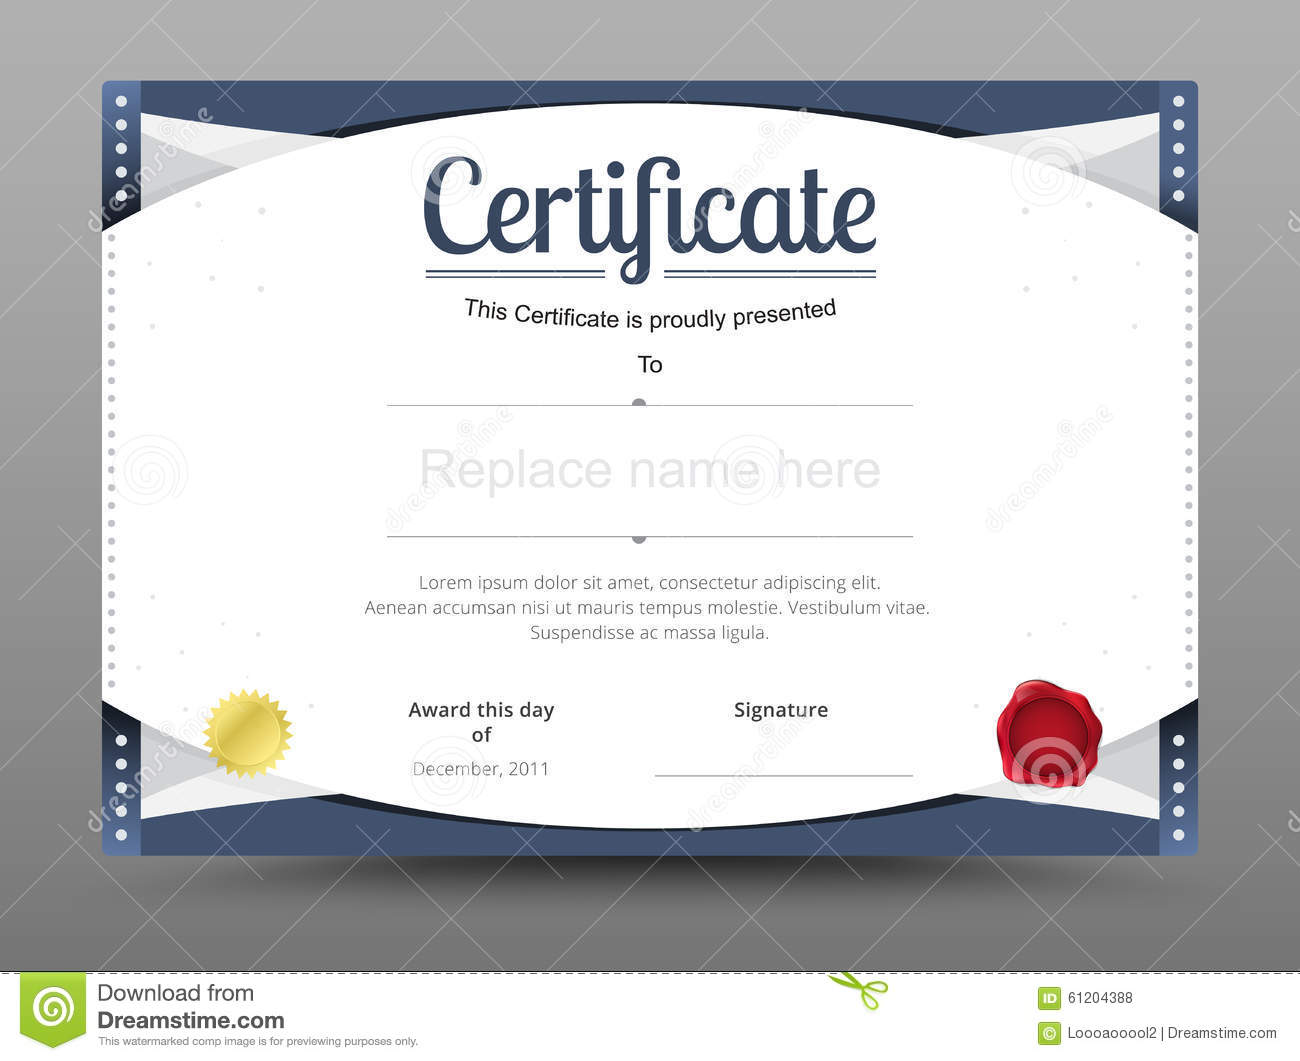 Elegant Certificate Template. Business Certificate Formal Theme.  Official Certificate Template